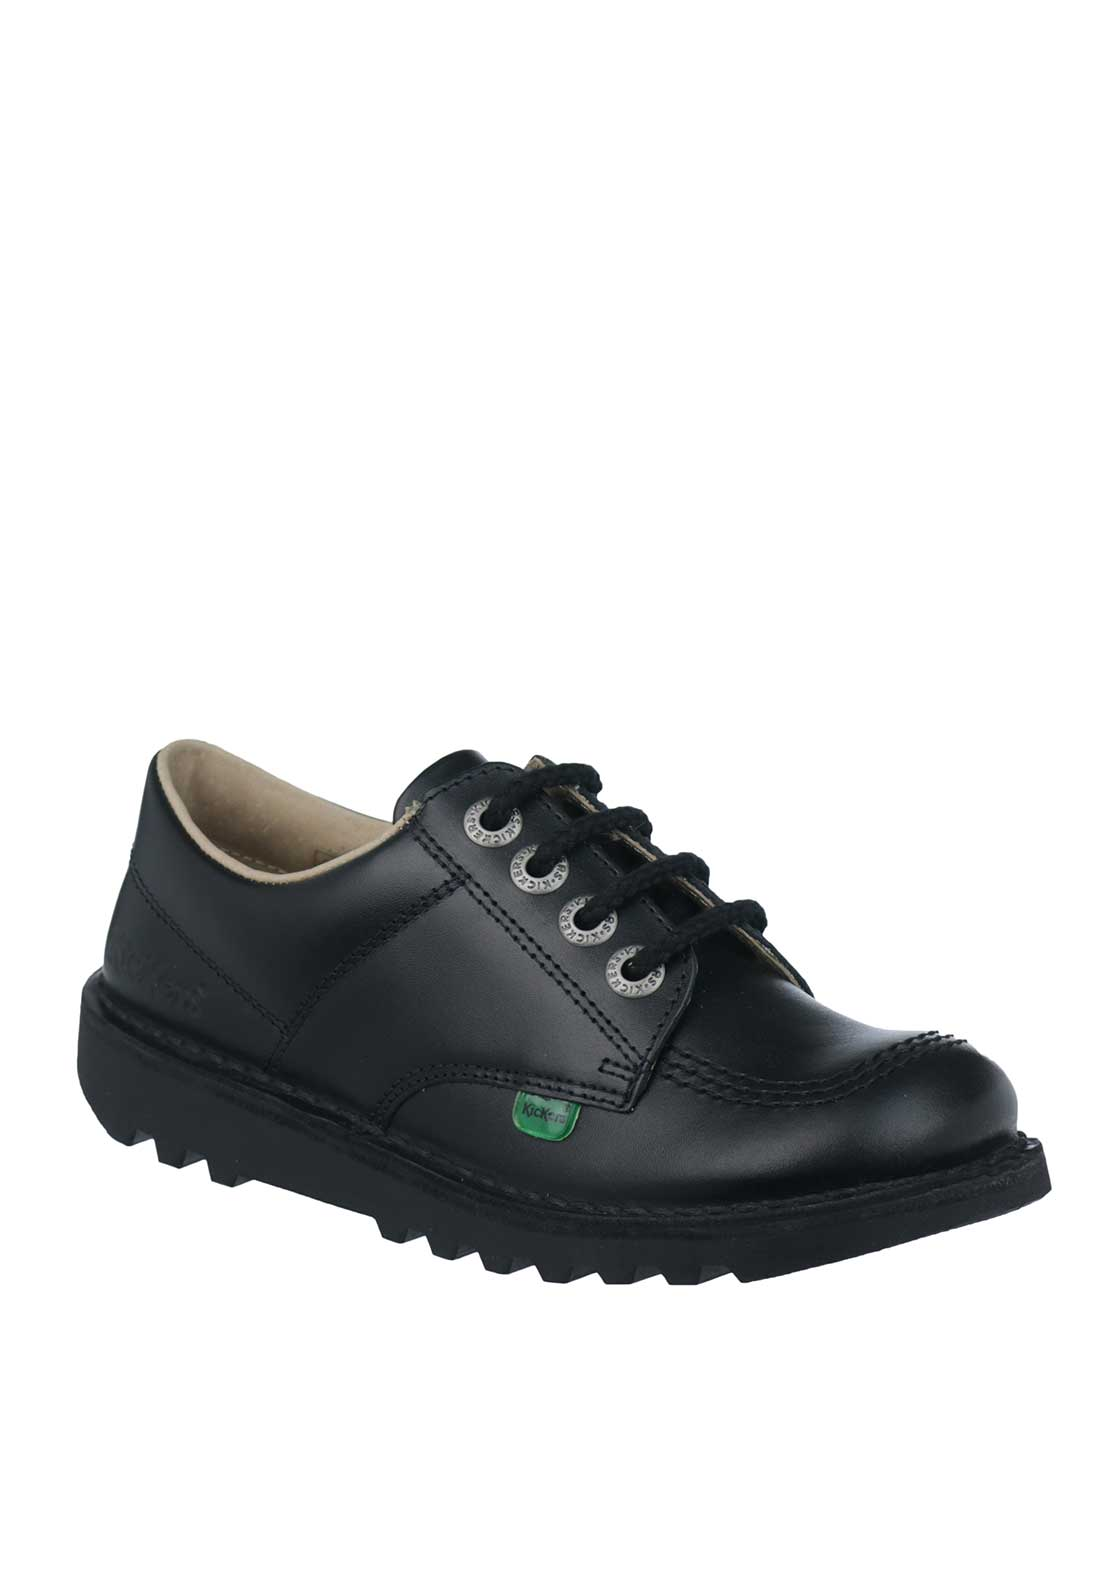 Kickers Kids Leather Lace School Shoes, Black